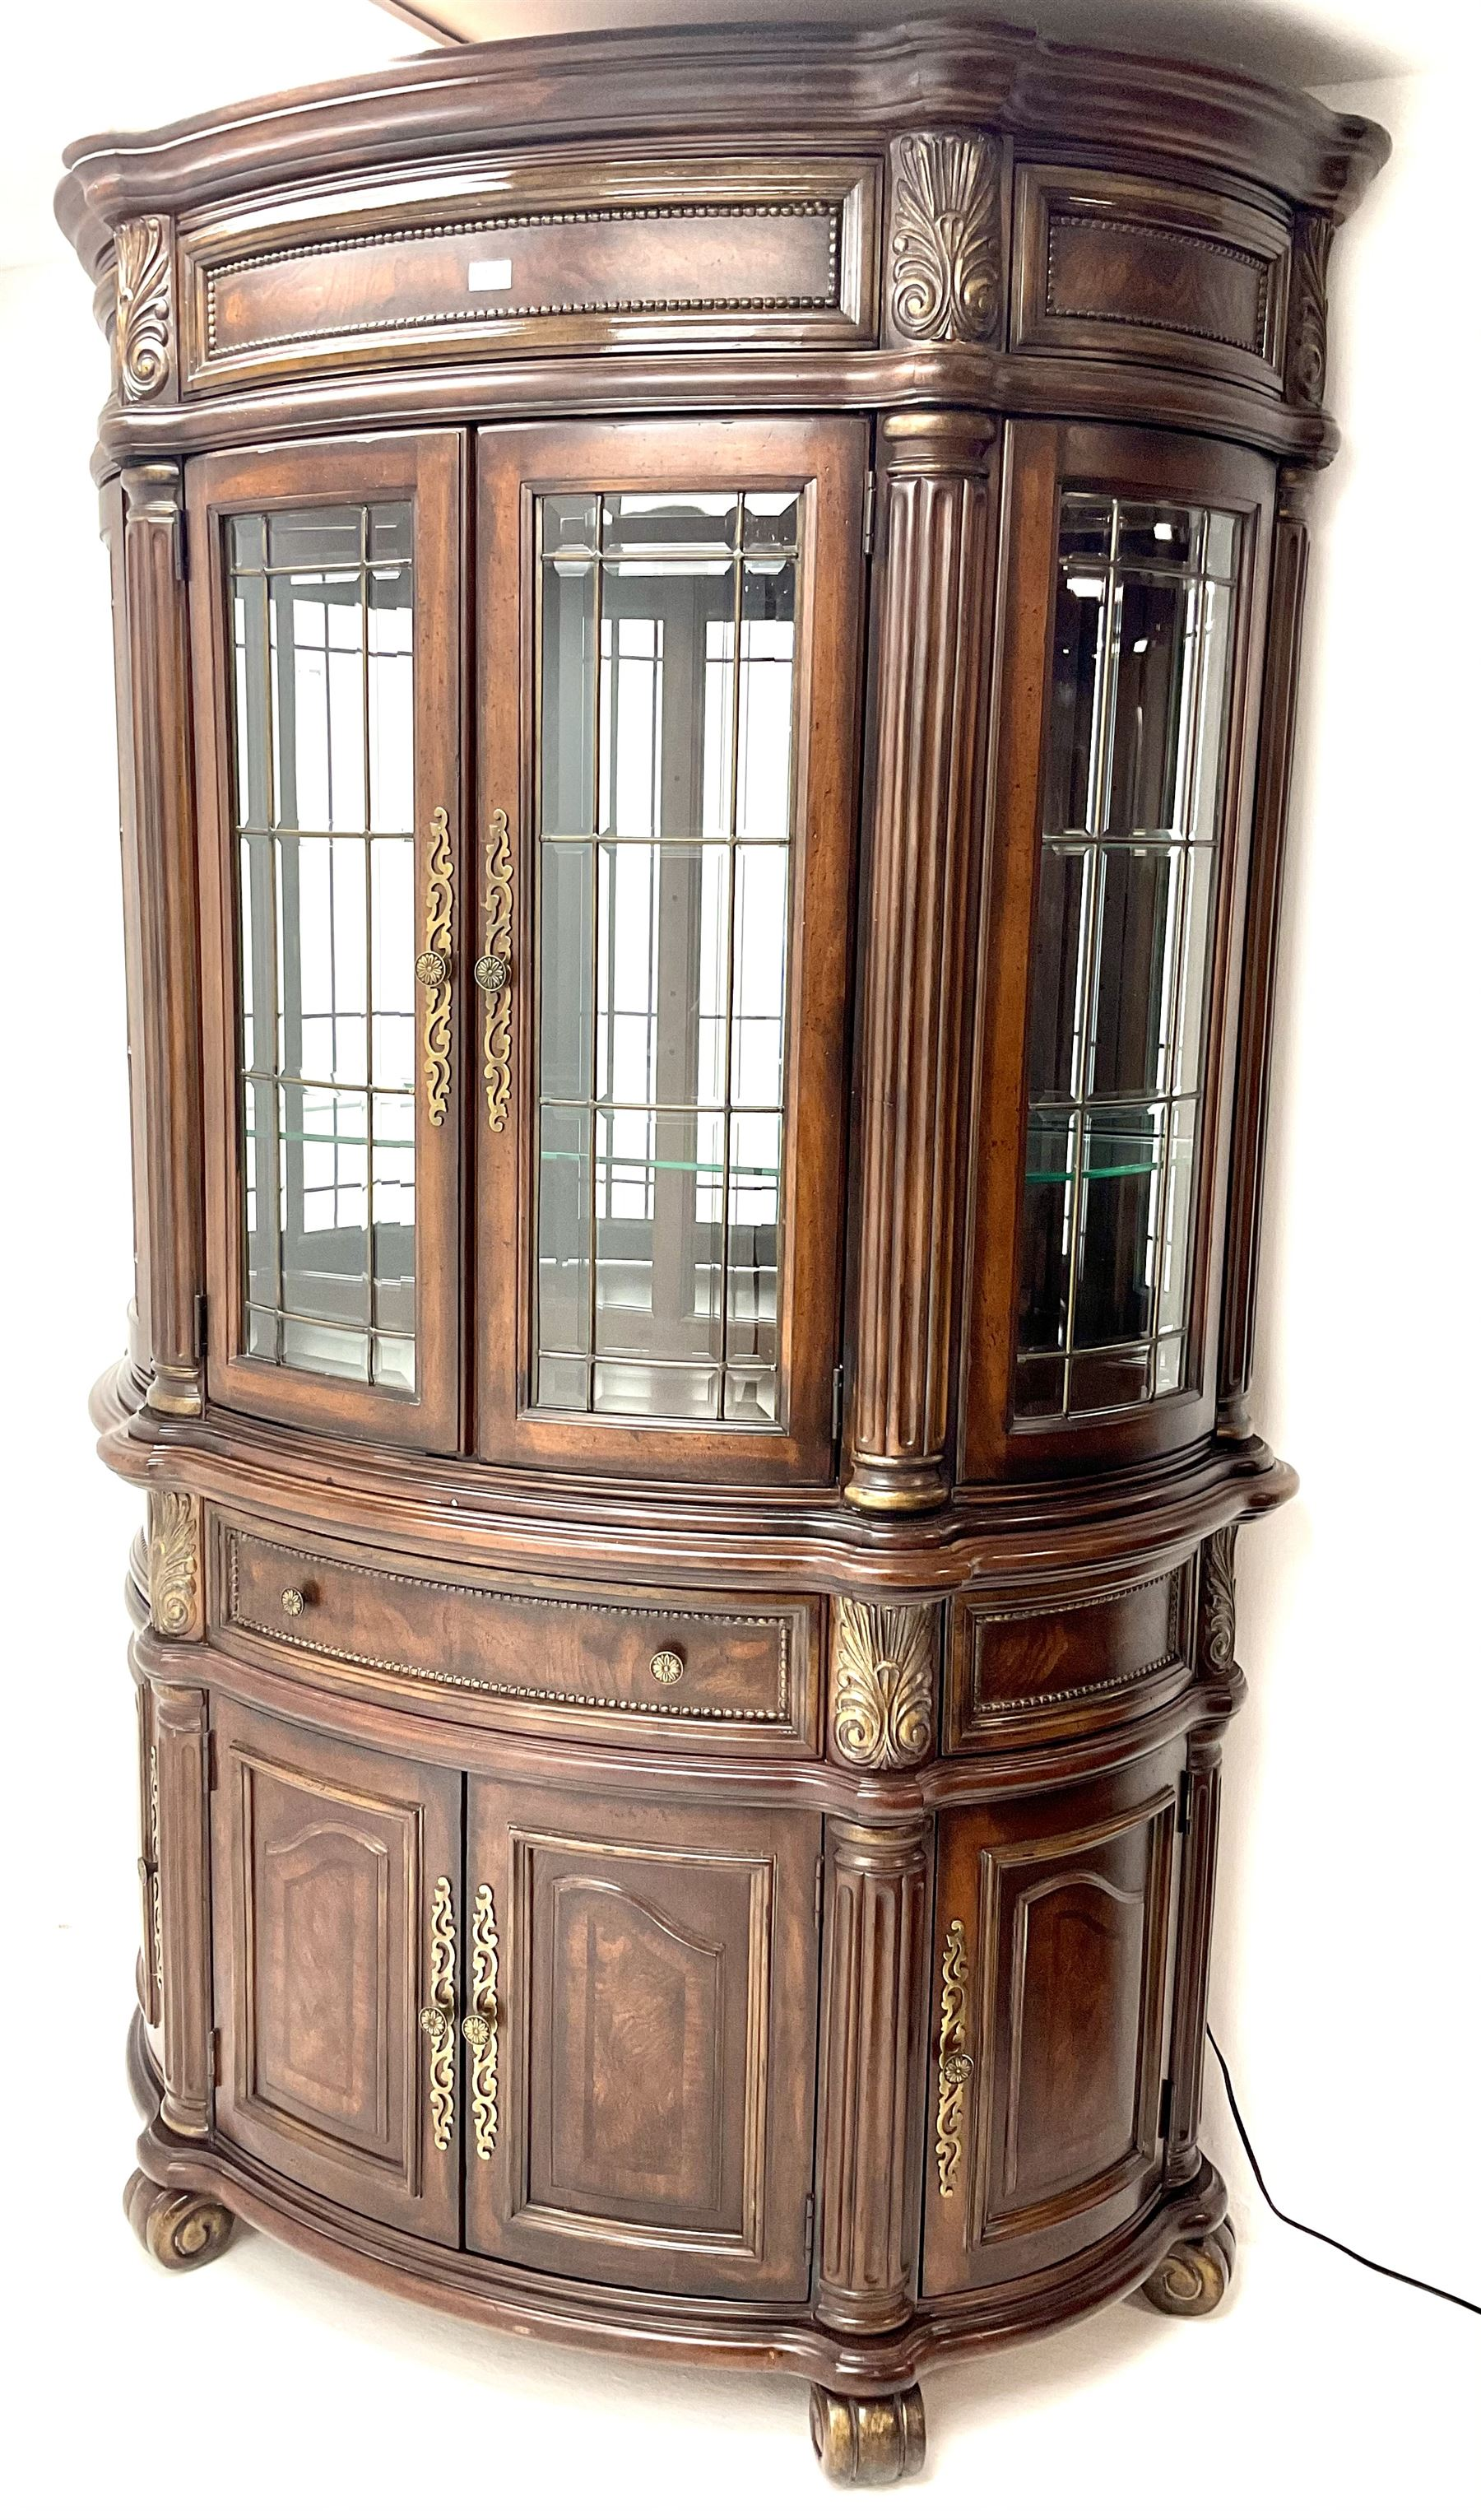 Kevin Charles American walnut demi lune display cabinet with illuminated interior - Image 2 of 13